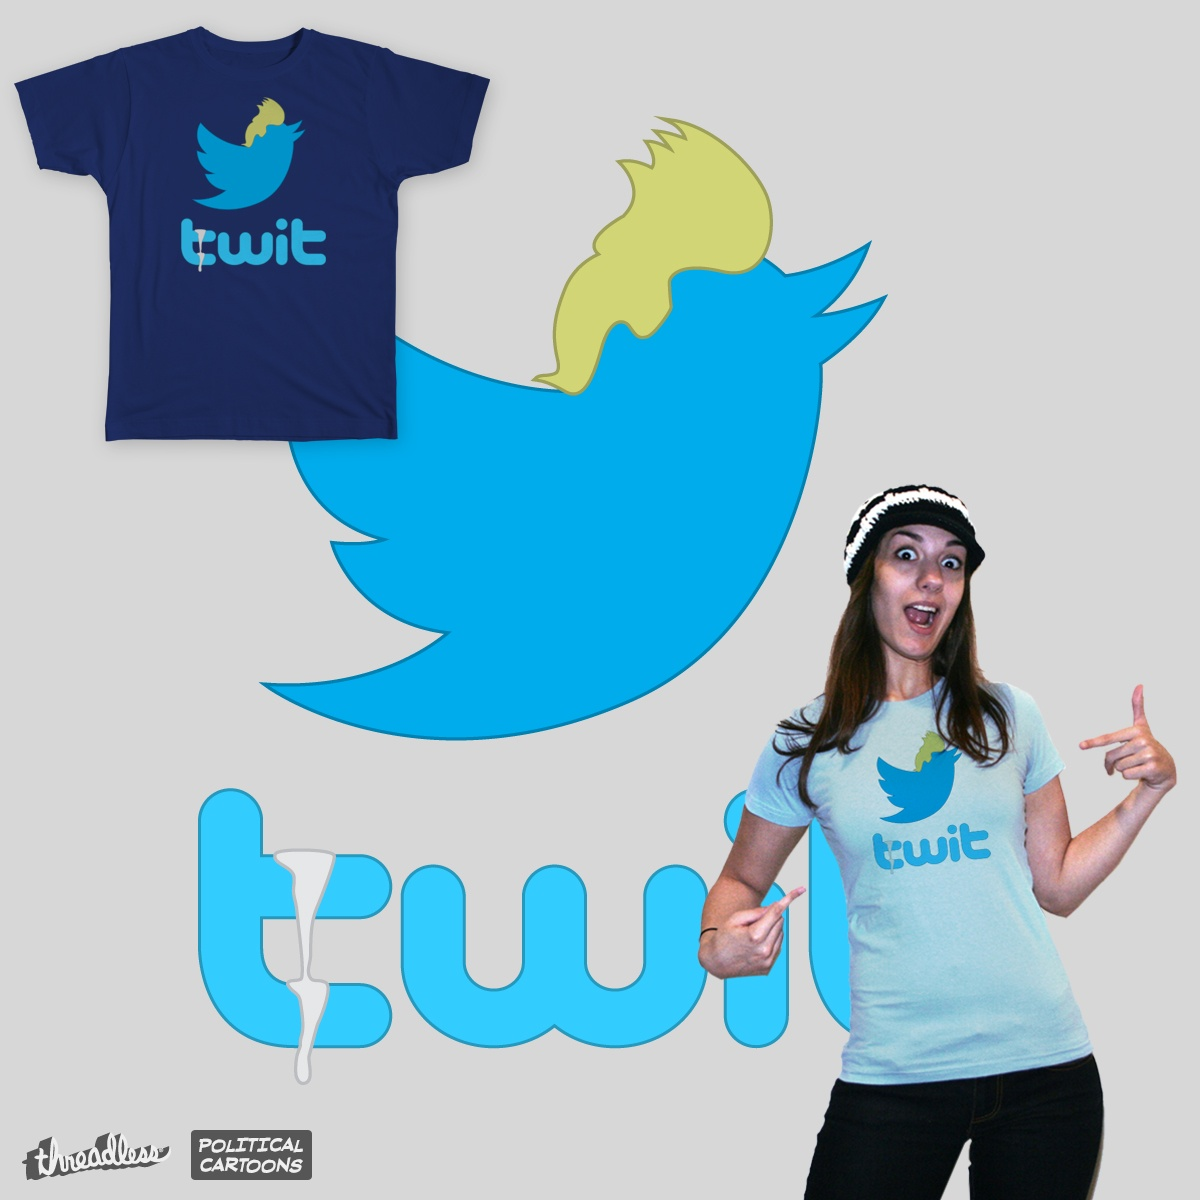 Twit, a cool t-shirt design